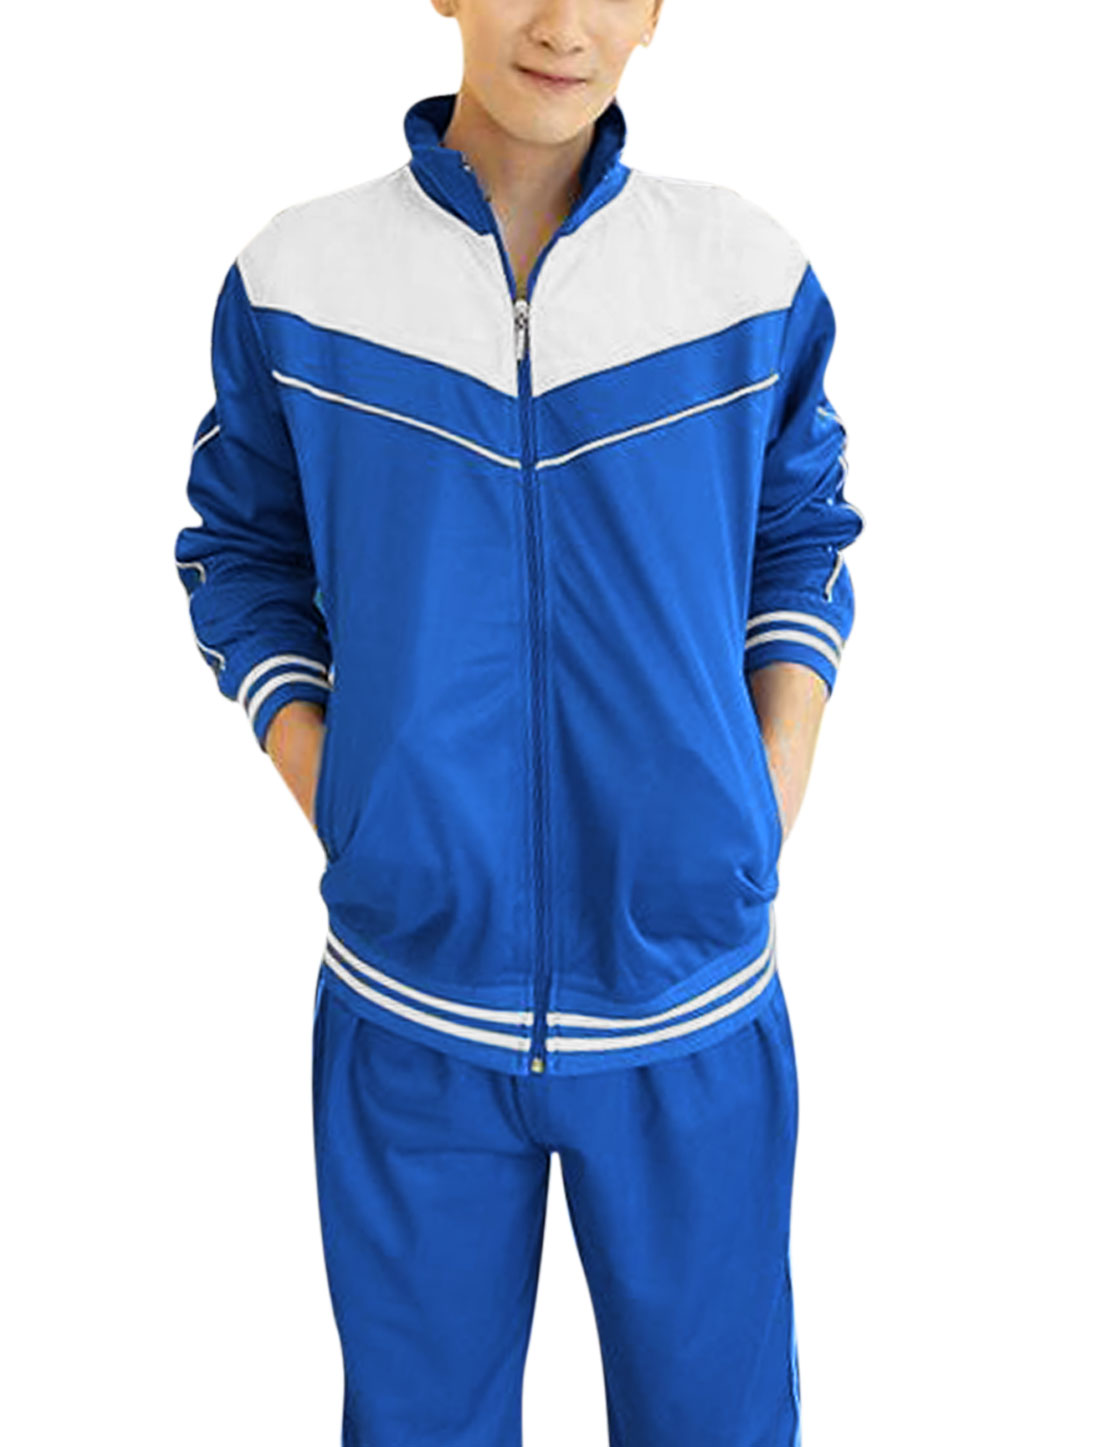 Men Contrast Color Jacket w Drawstring Elastic Waist Pants Royal Blue M